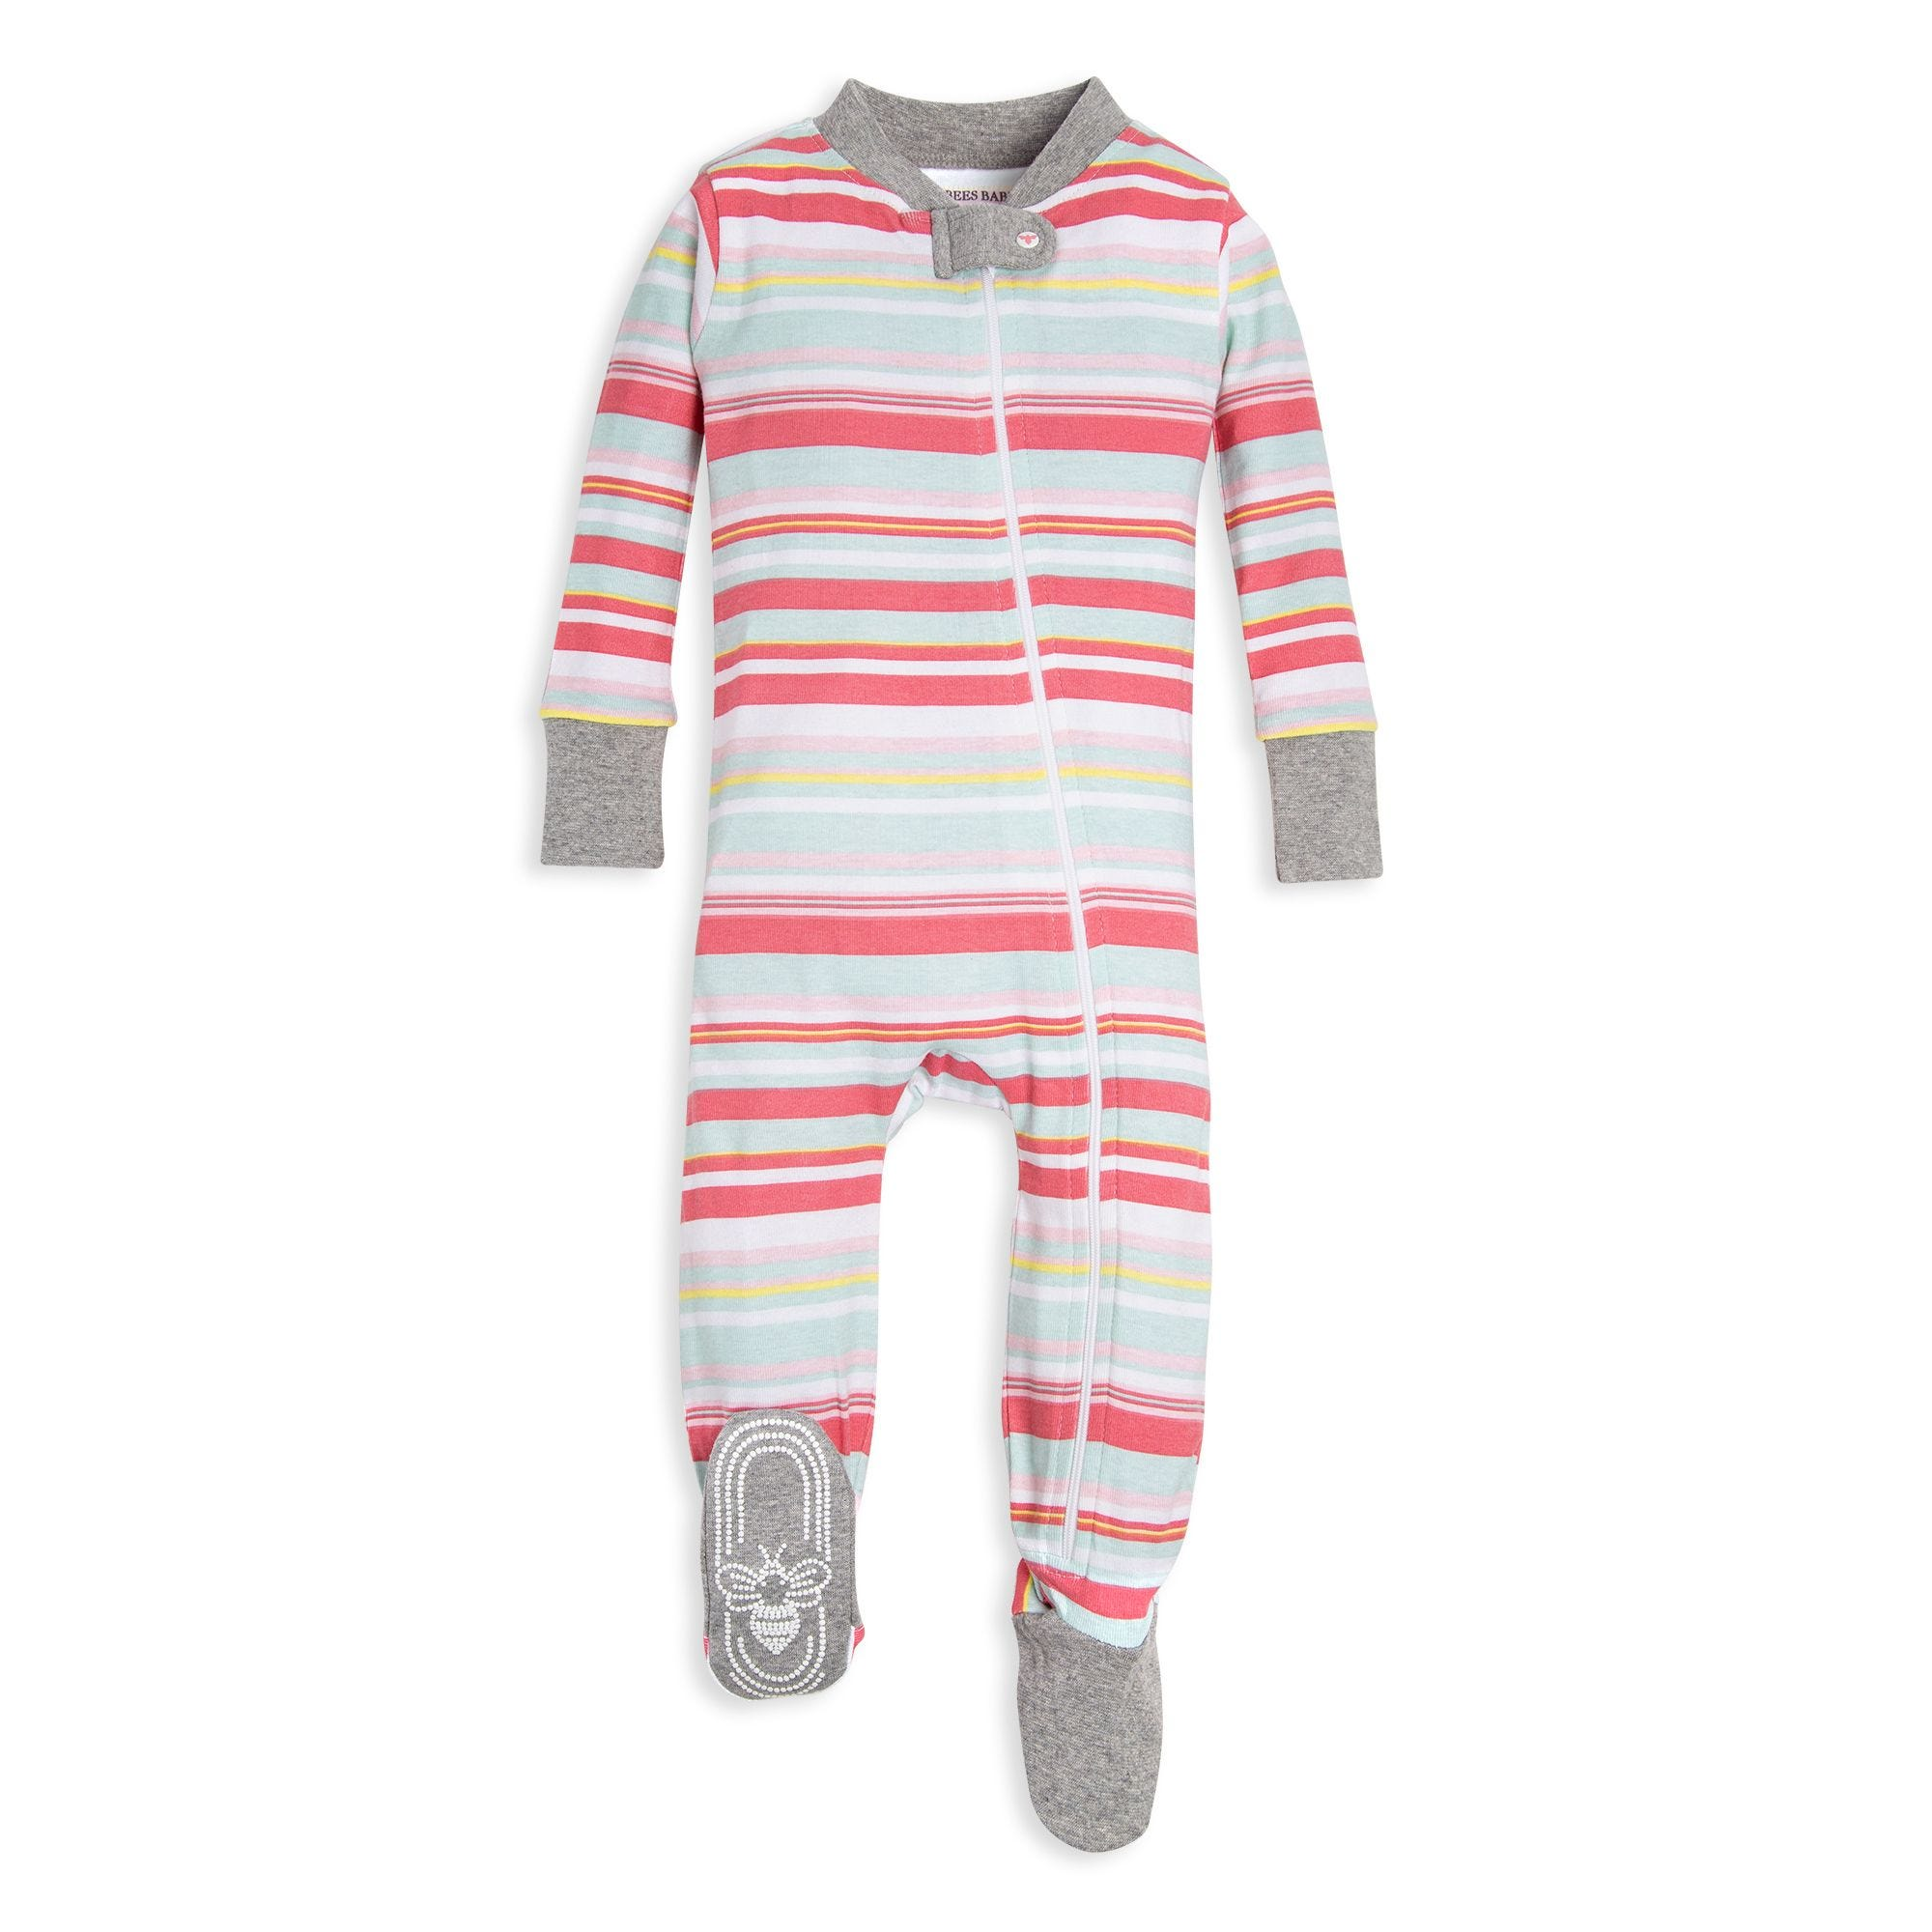 acc3f1268 Vintage Multi-Stripe Organic Baby Zip Up Footed Pajamas